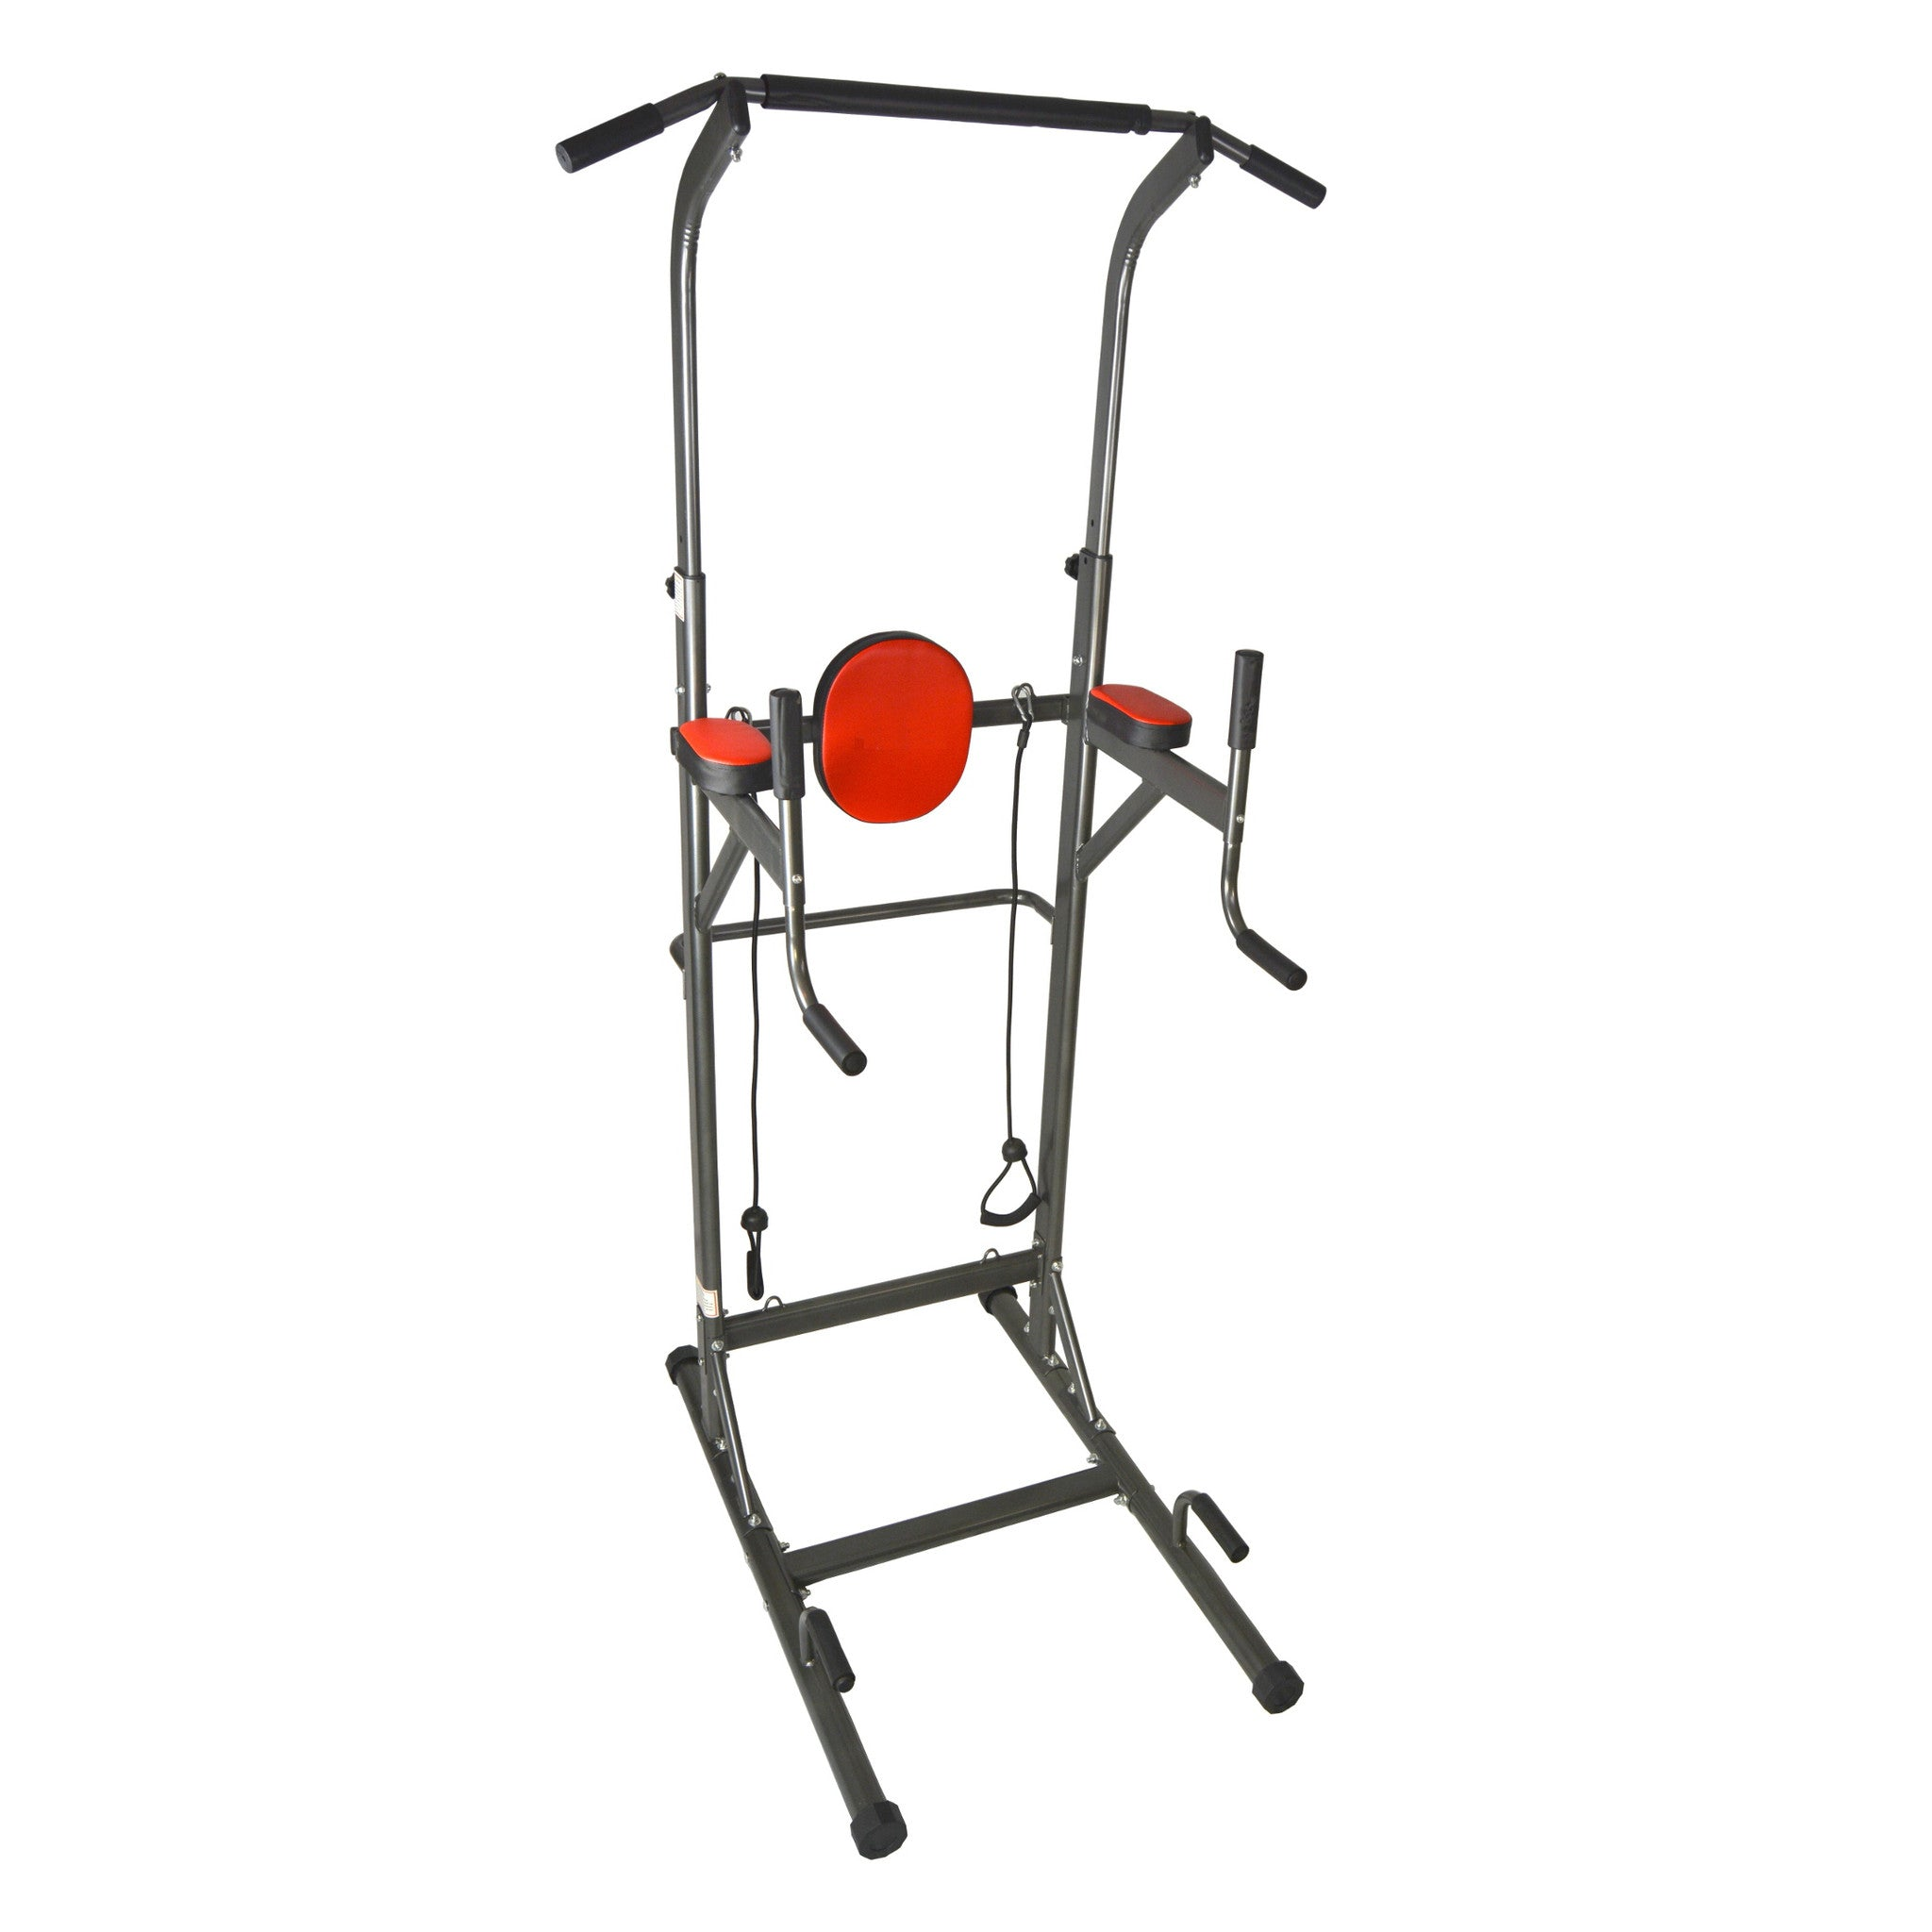 i j fitness vertical knee raise vkr chin up push up dip abi j fitness pull up power tower